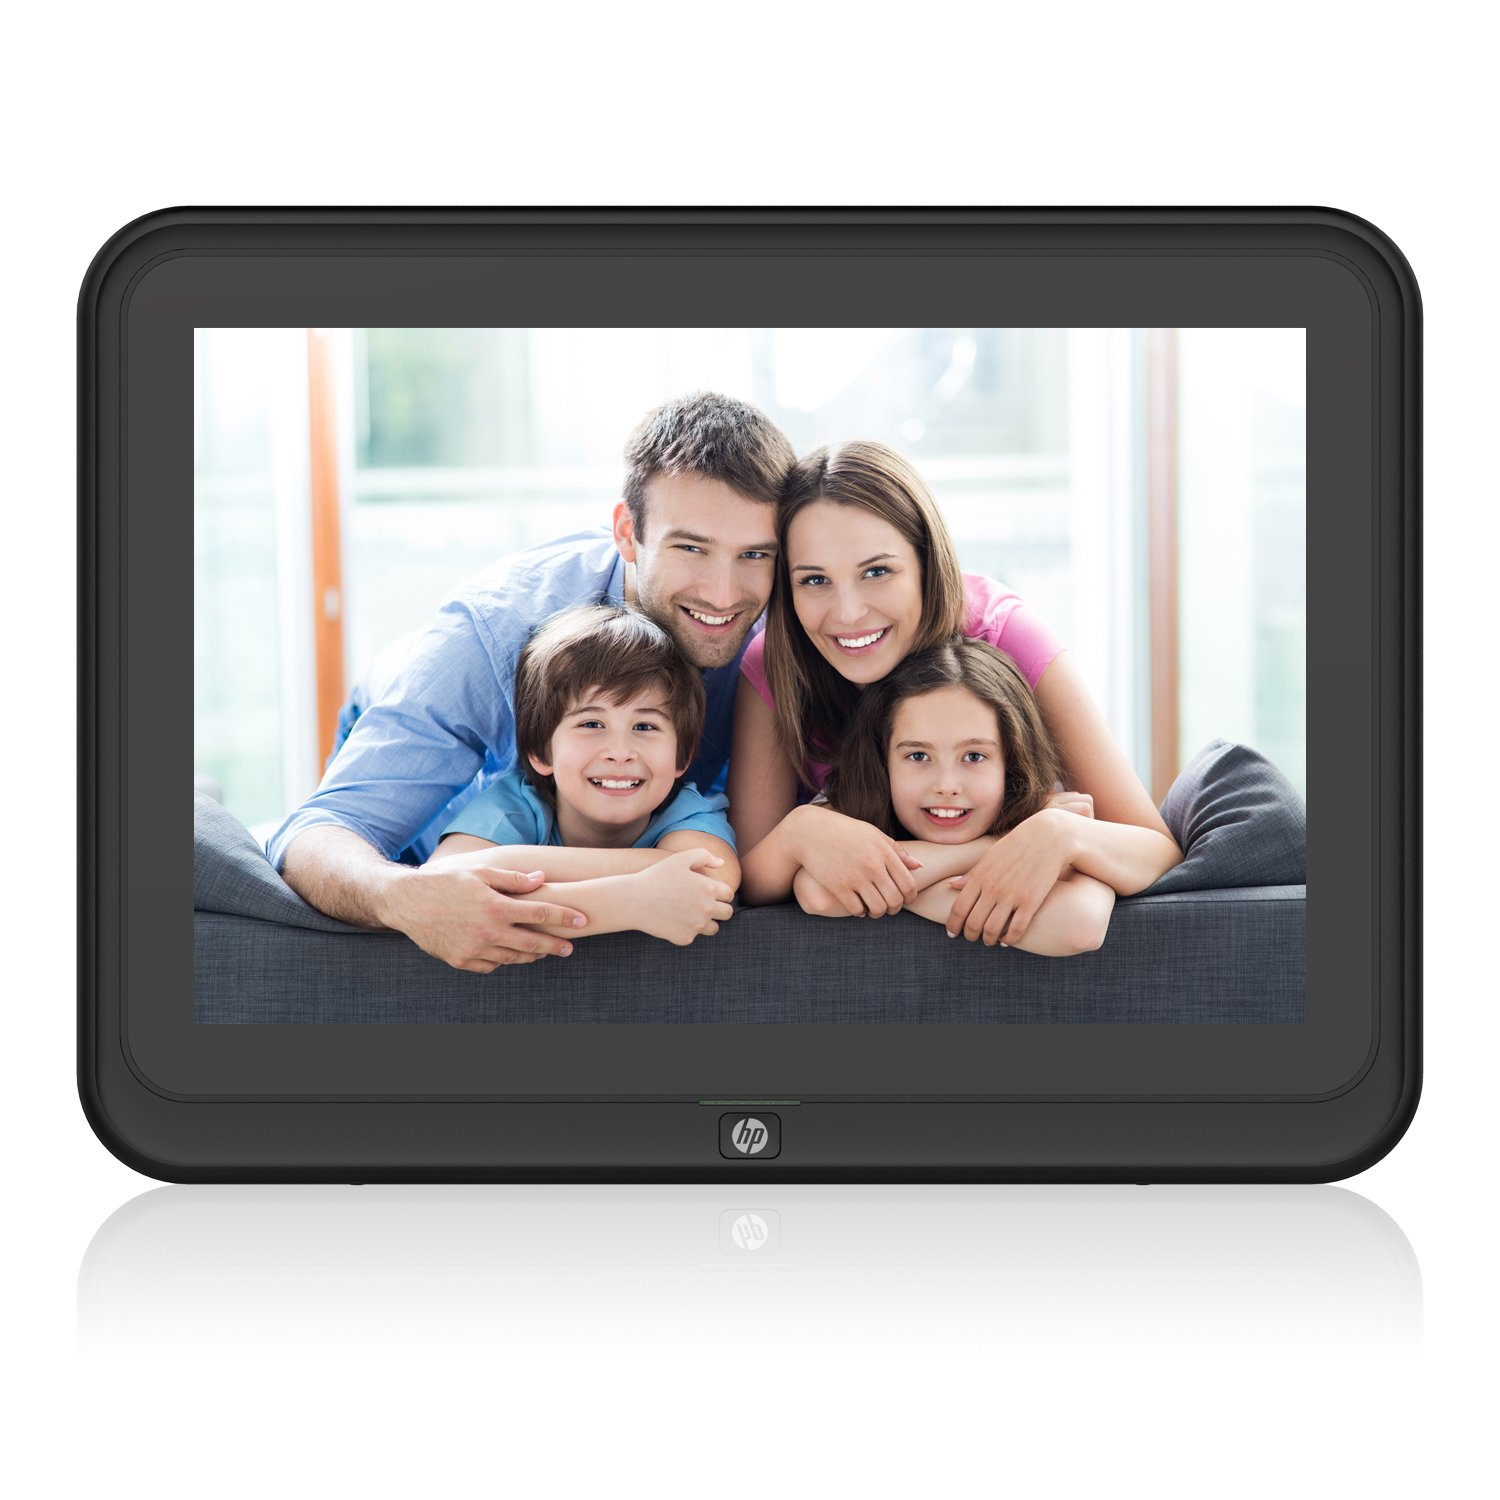 HP df1050tw 10.1 inch Wi-Fi Digital Photo Frame with HD Display, 1280x800 Touchscreen IPS, iPhone & Android App, 8GB Internal Memory, Photo, Music and Video Support ( Black ) by HP